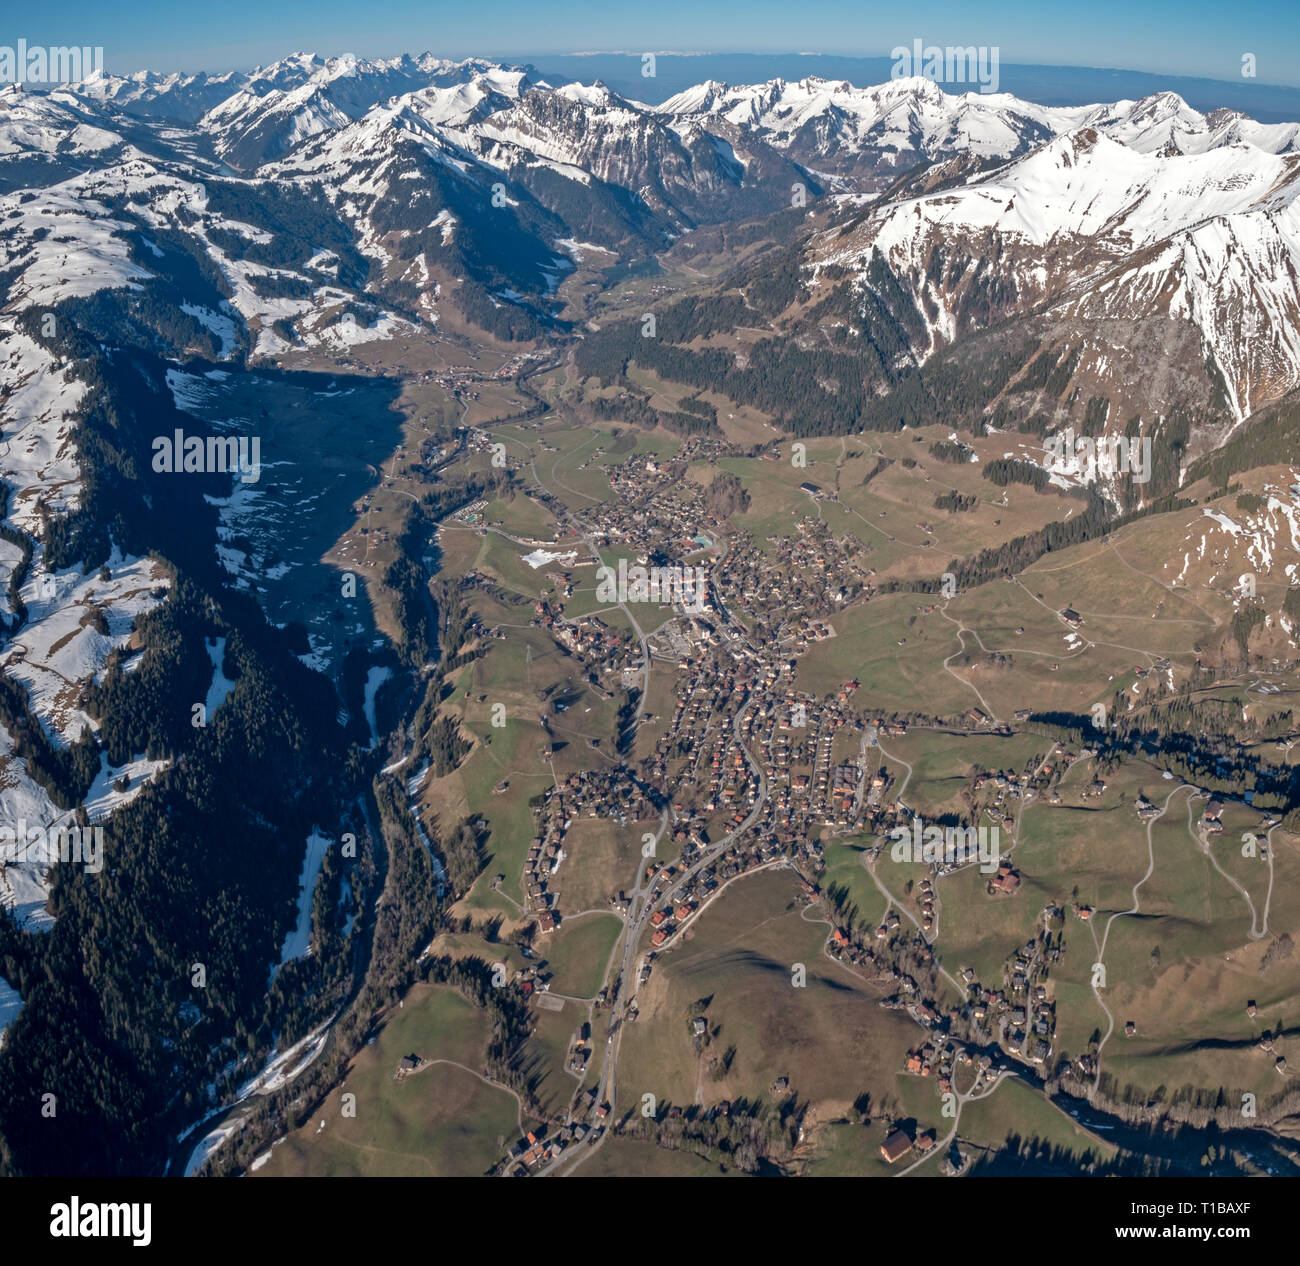 Stunning Aerial views over the a Swiss Alpine town and valley basin, surrounded by snow covered high mountain peaks and mountains. Stock Photo